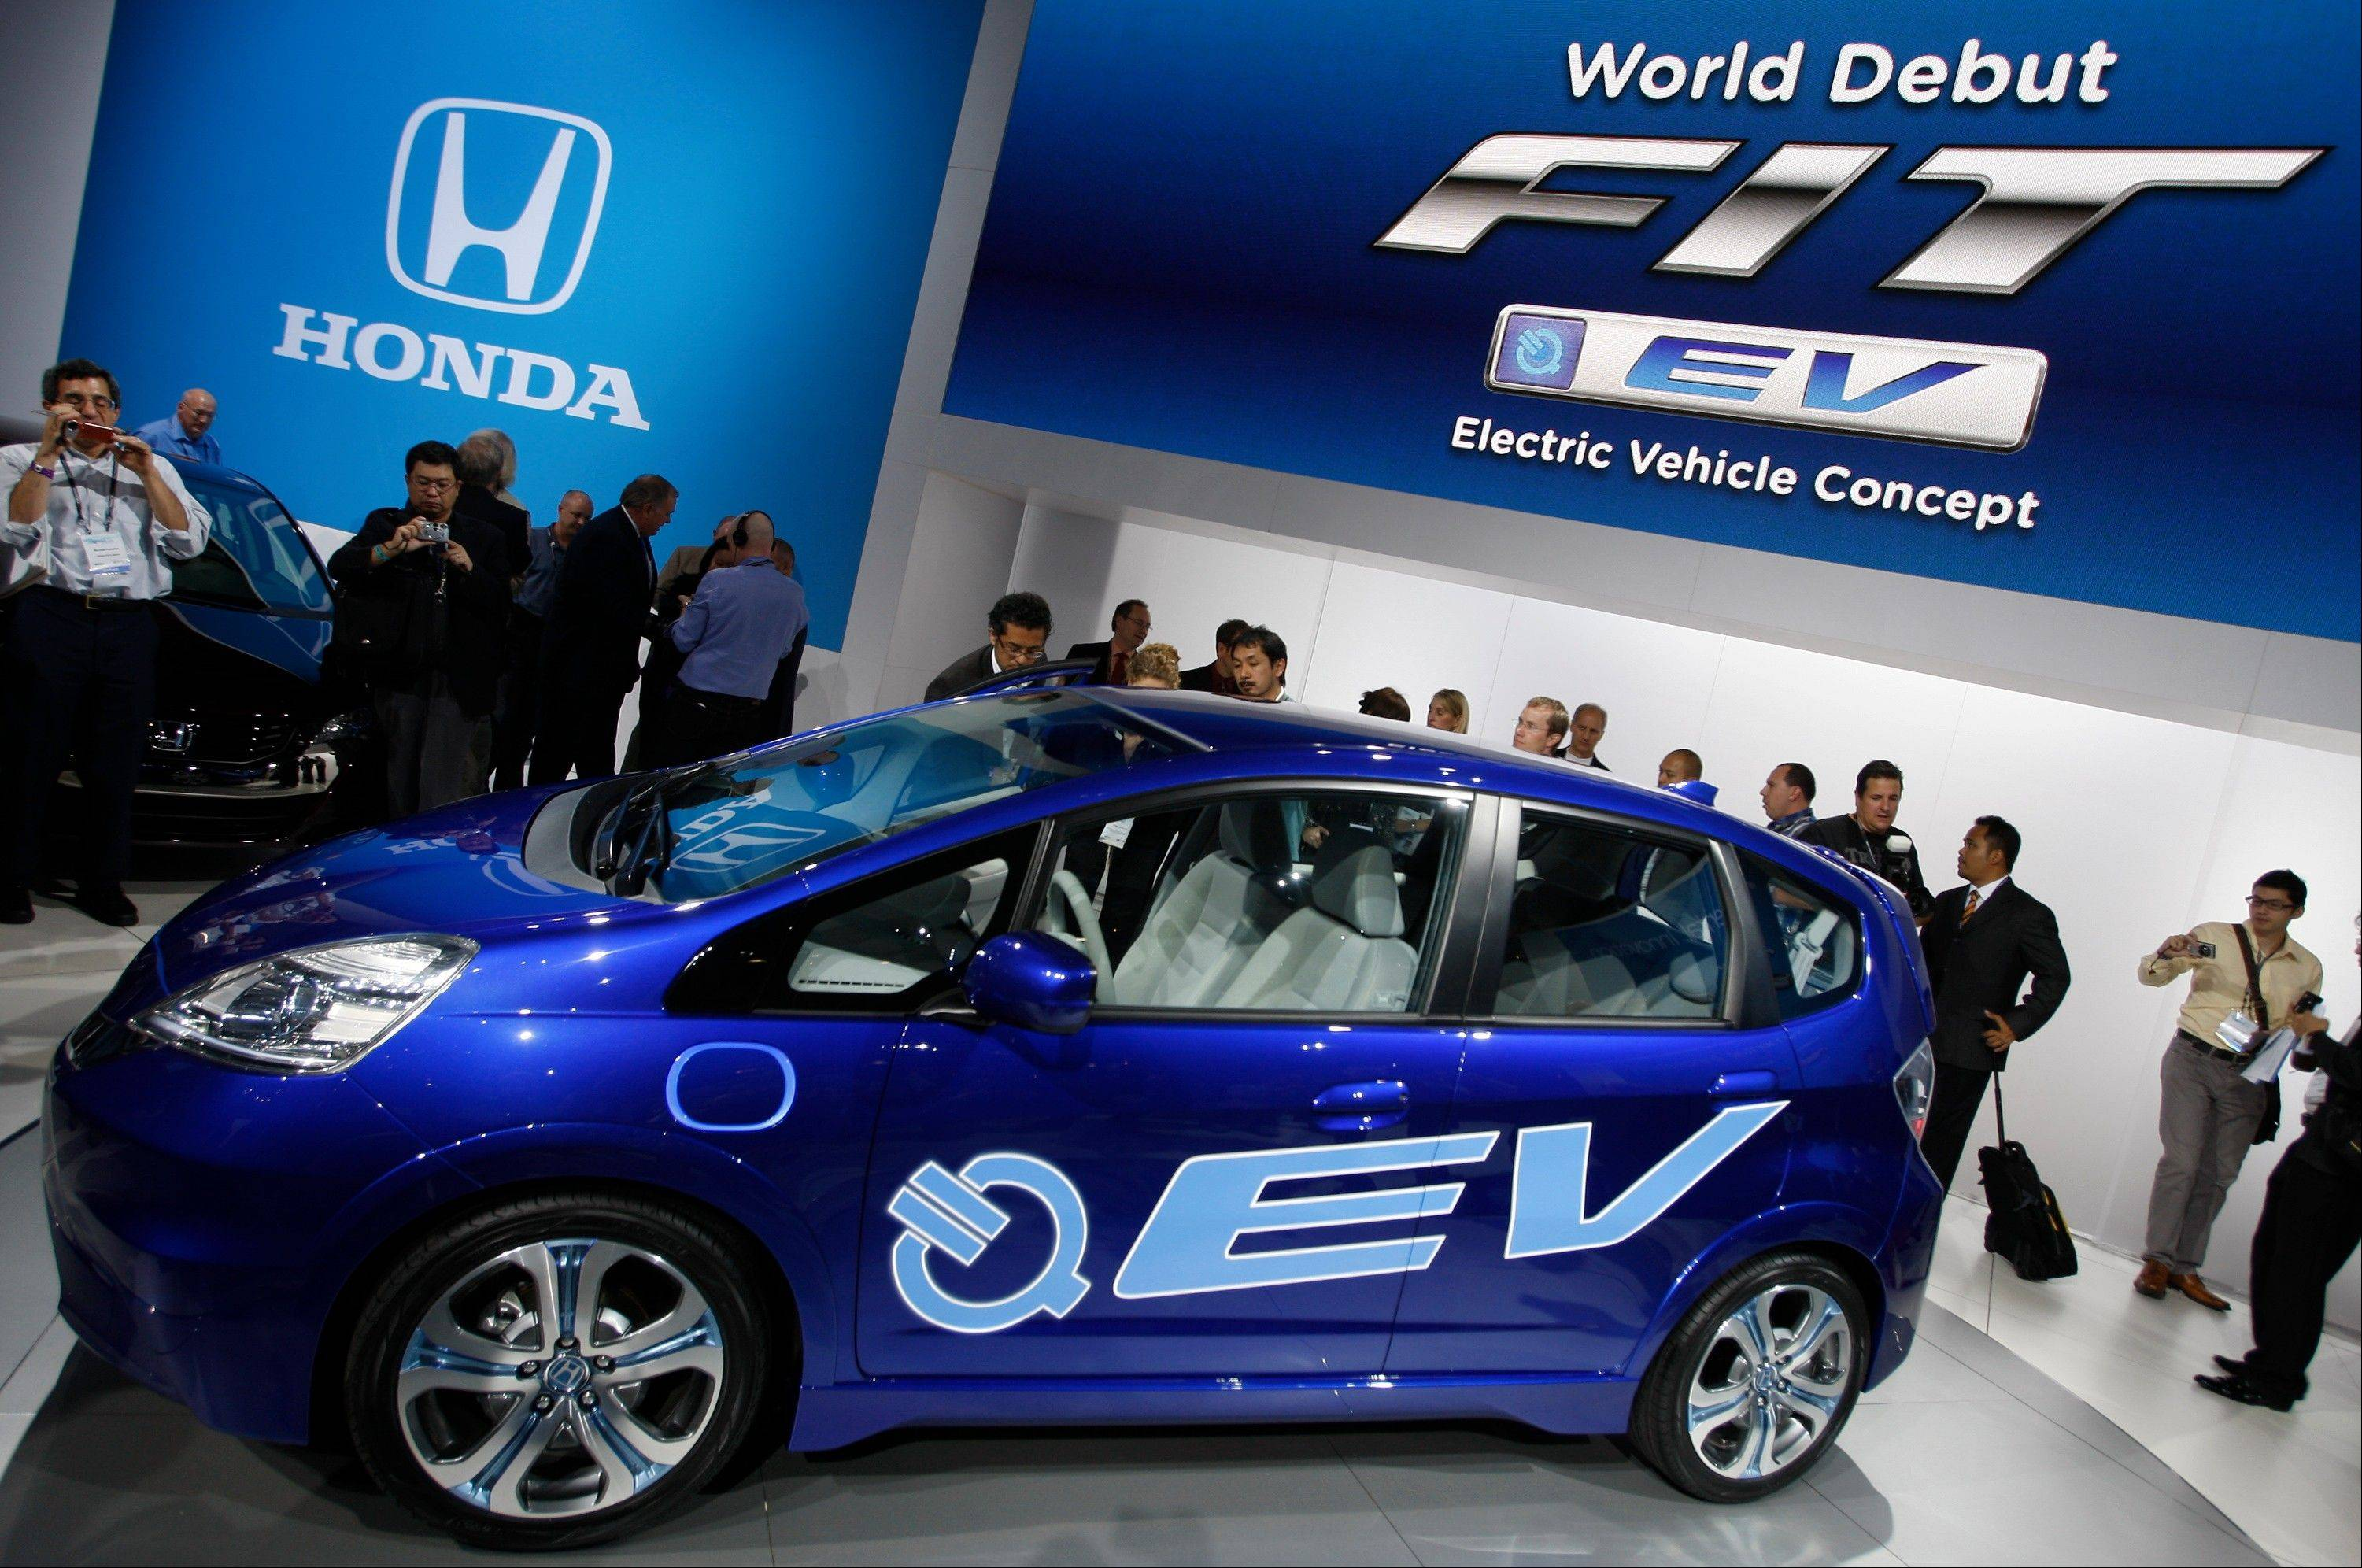 Honda introduces its FIT EV Electric Vehicle Concept car at the Los Angeles auto show in November 2010. Auto companies in the U.S. are lowering lease prices for electric cars as they try to jump-start slow sales in a competitive market.